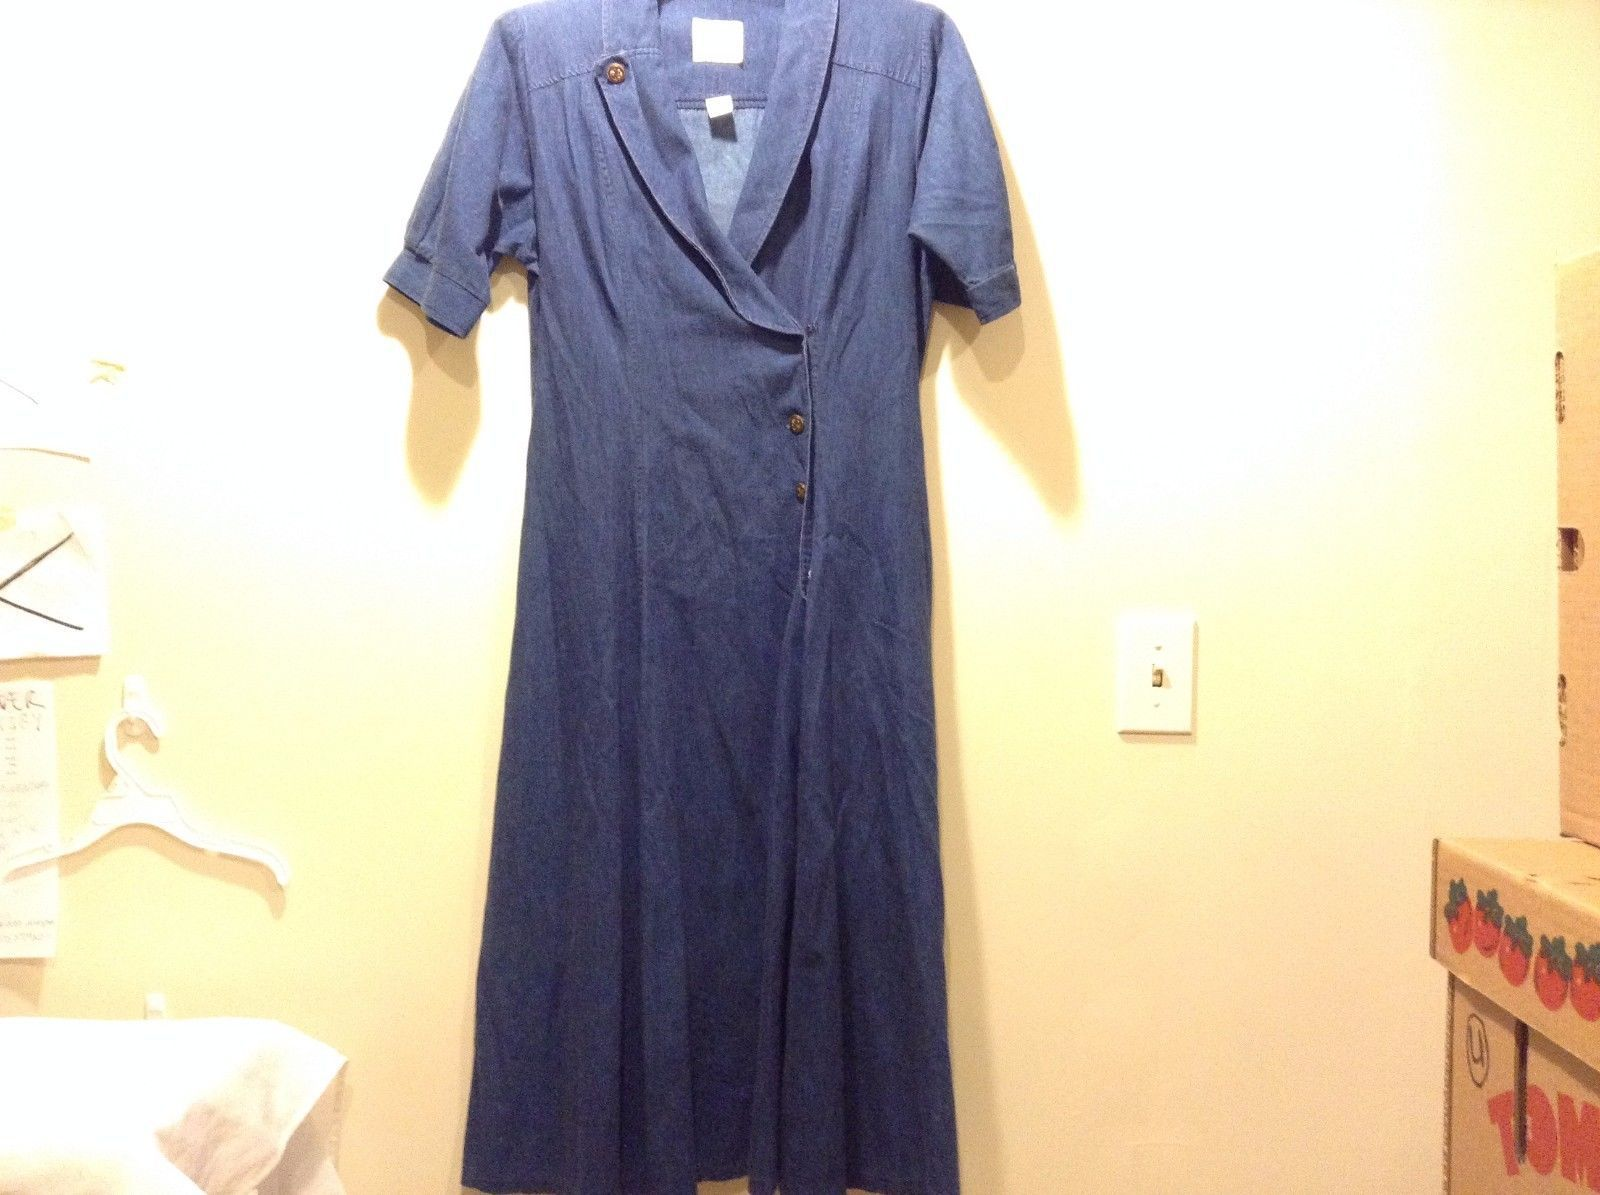 Used Great Condition Sabino Size 12 100% Cotton Buttoned Collared Blue Dress